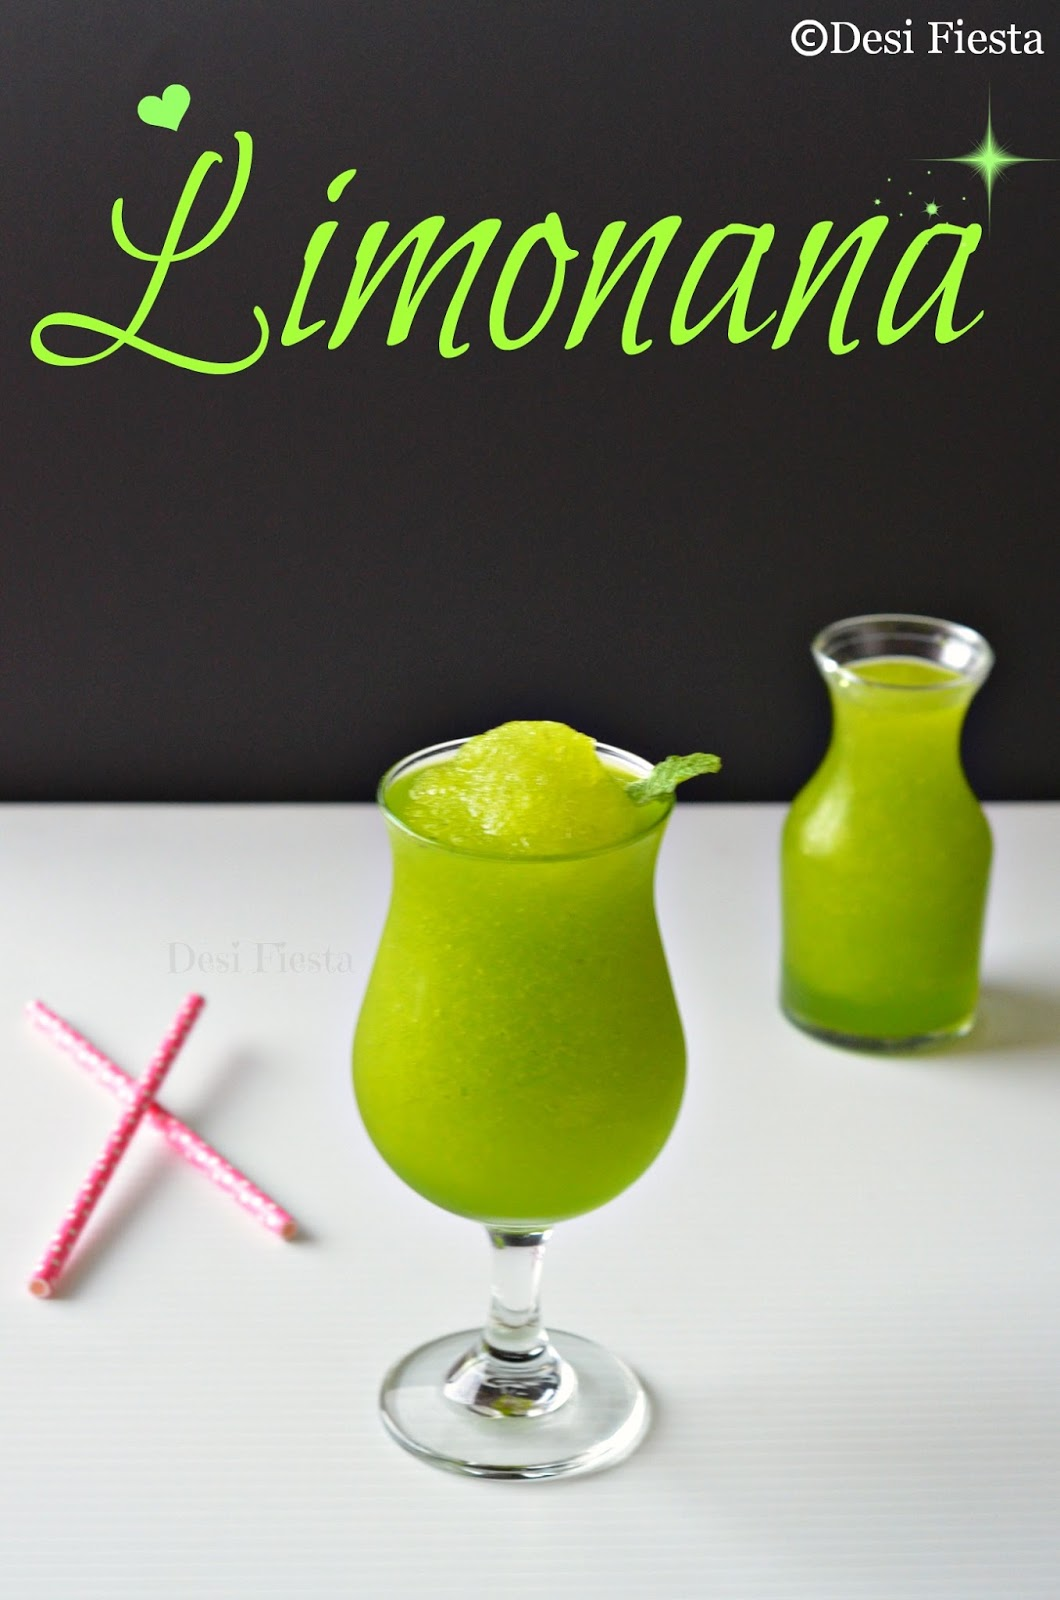 Desi Fiesta : Limonana | Frozen Mint Lemonade |National Drink of ...